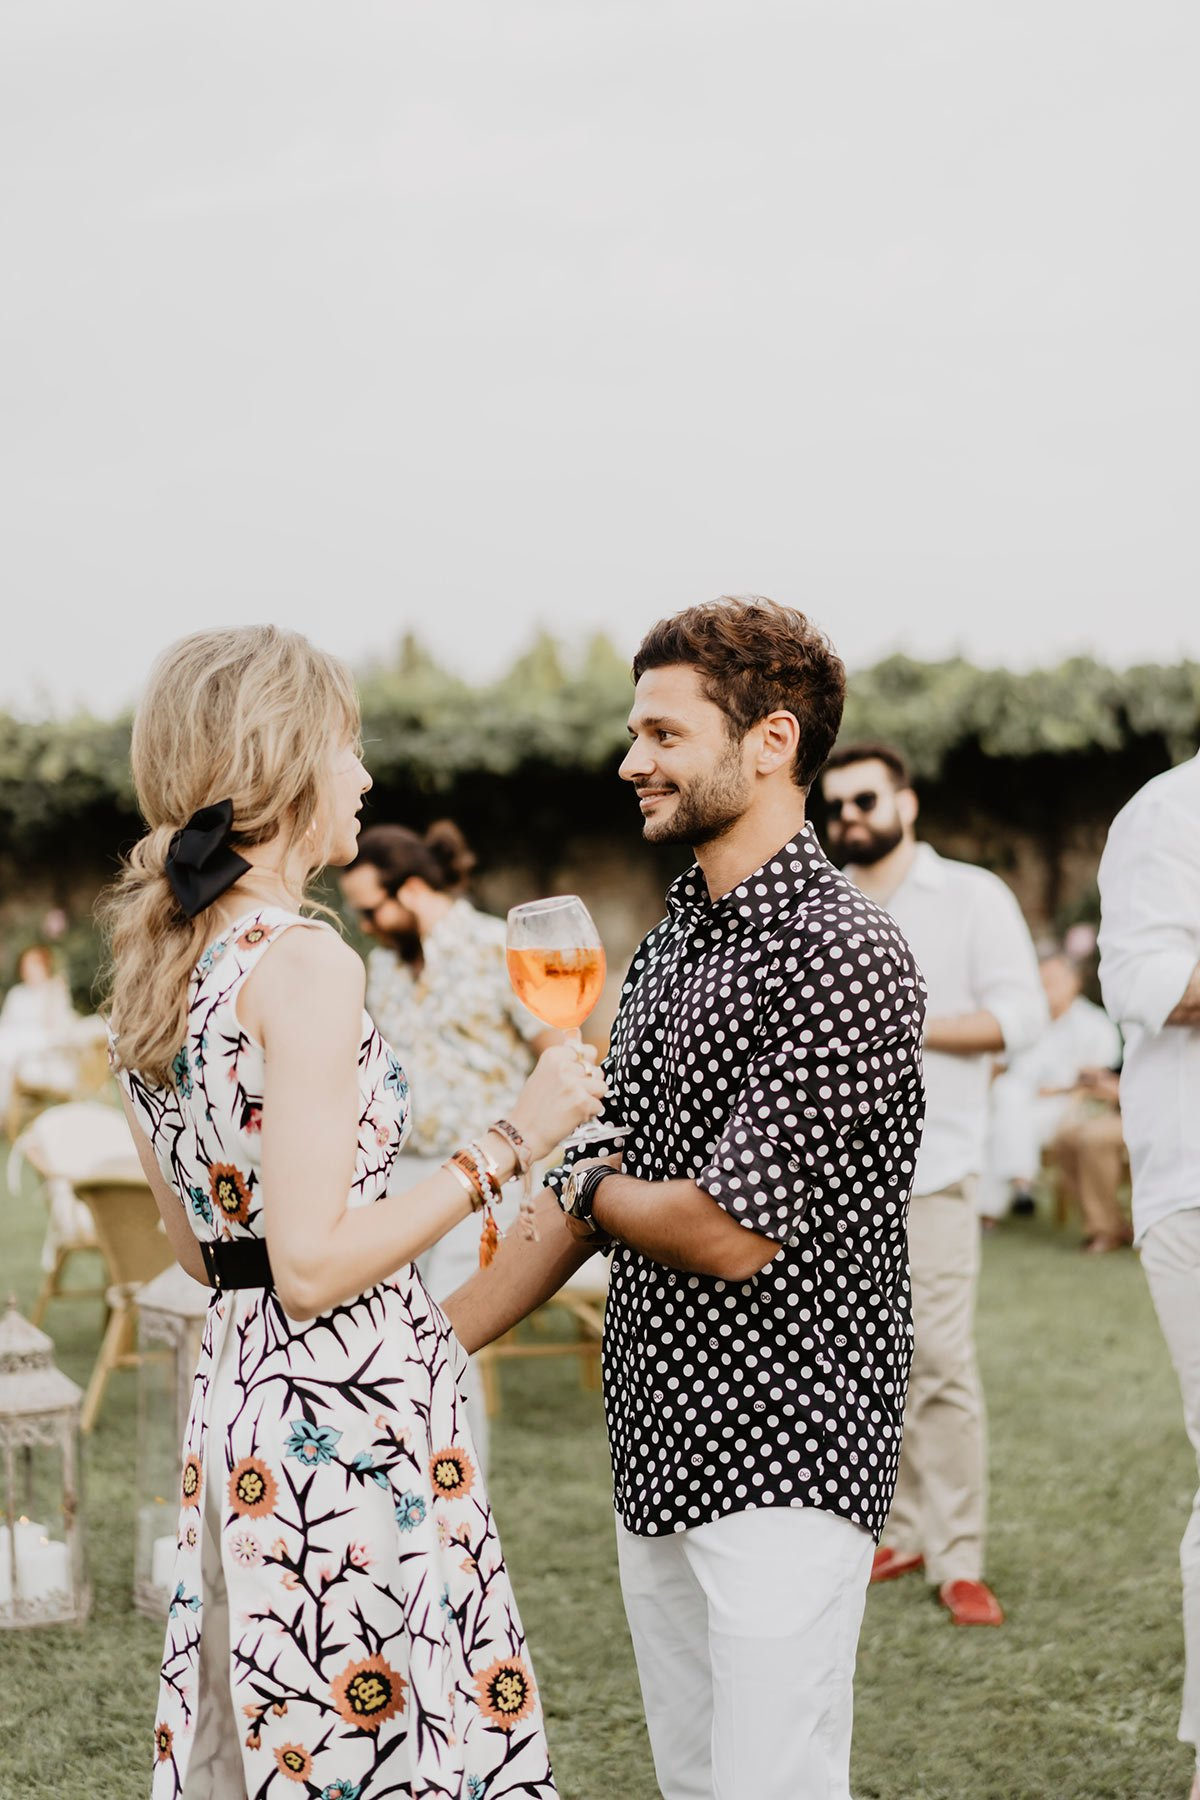 Ranya and Tarek, rehearsal dinner in Italy